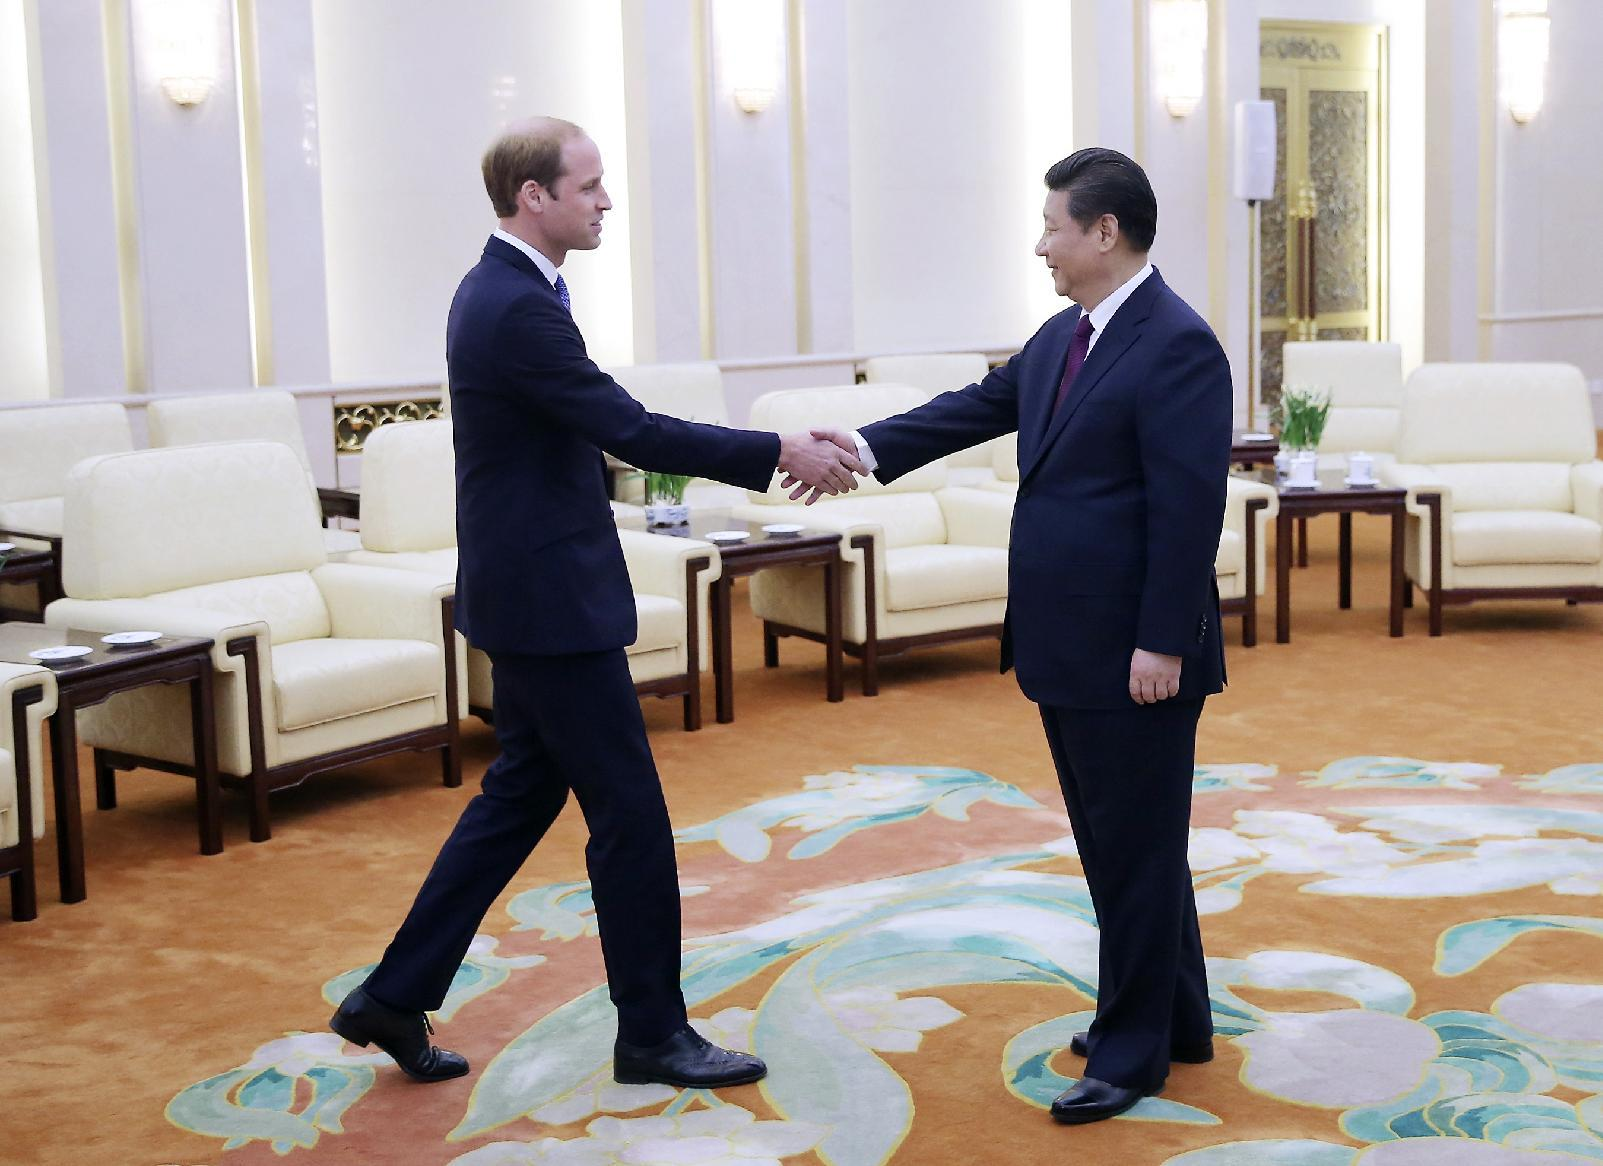 Britain's Prince William takes on diplomatic role in China